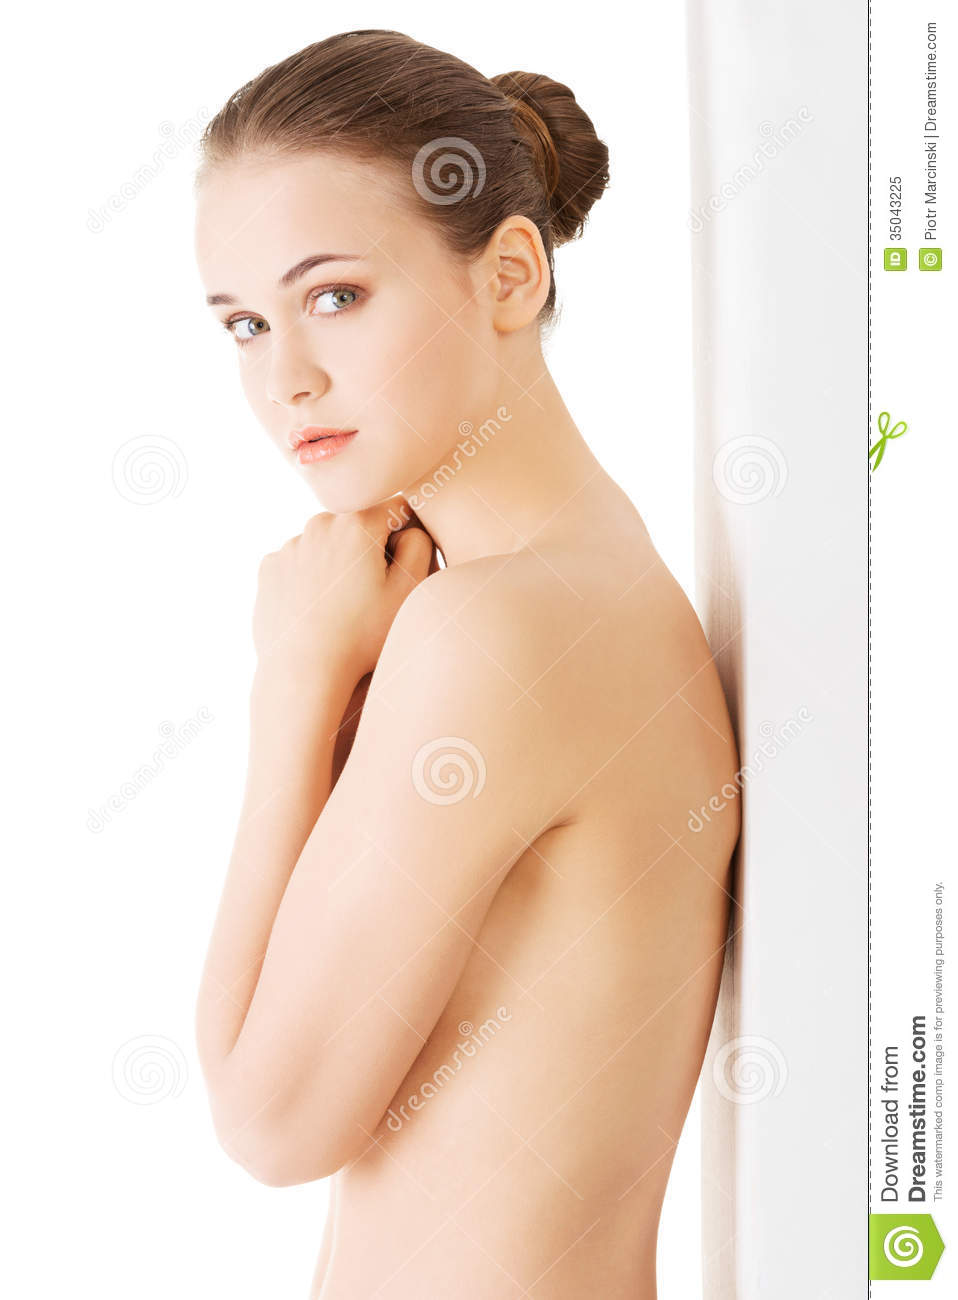 Attractive naked woman opinion obvious